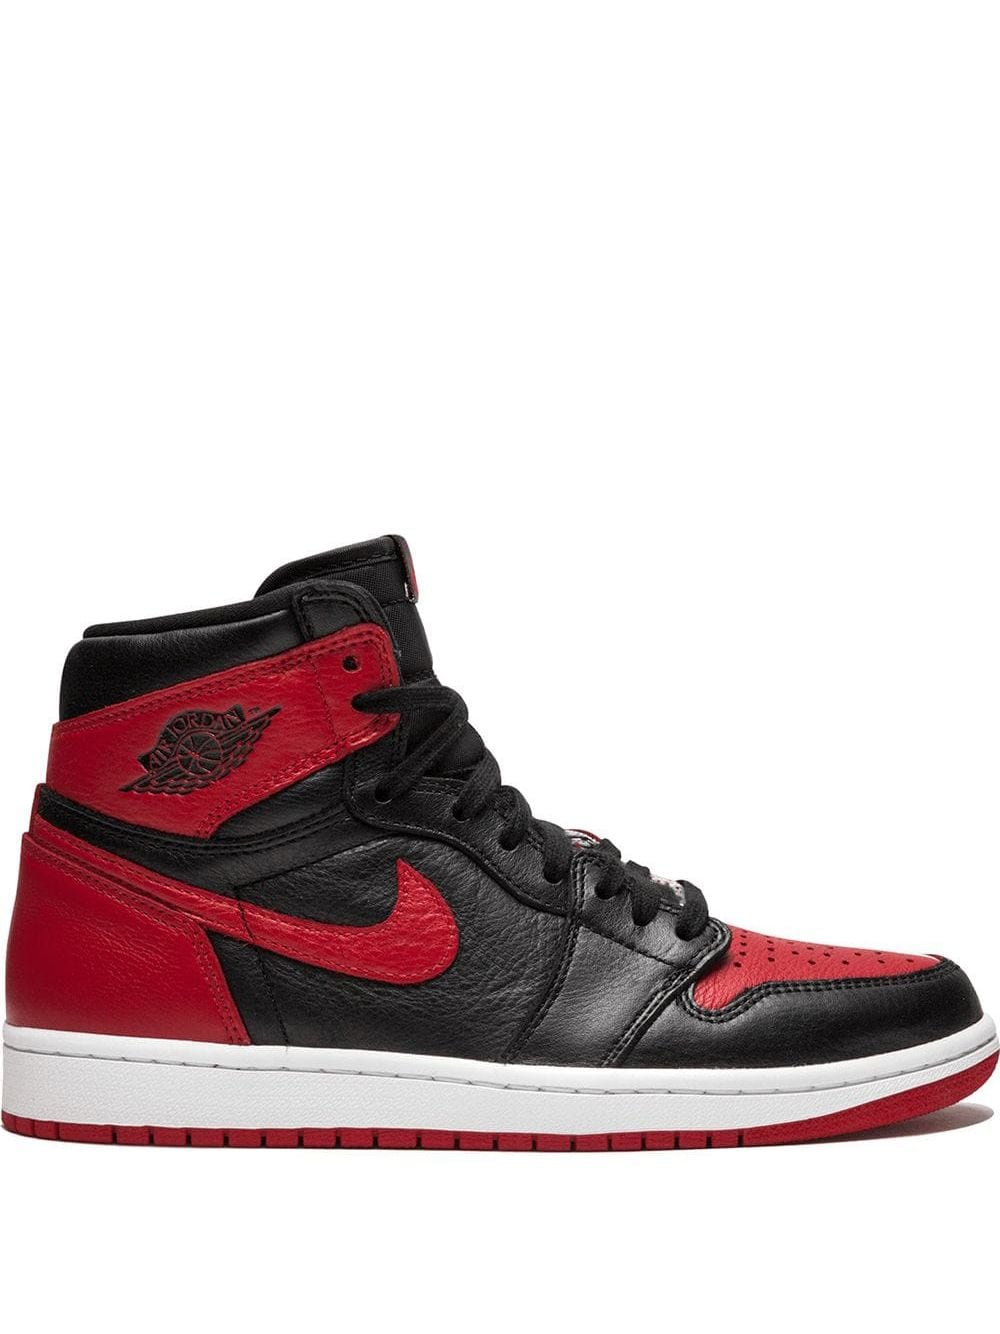 best service e6fa1 5c29d Jordan  Air Jordan 1 Retro OG  High-Top-Sneakers - Rot von